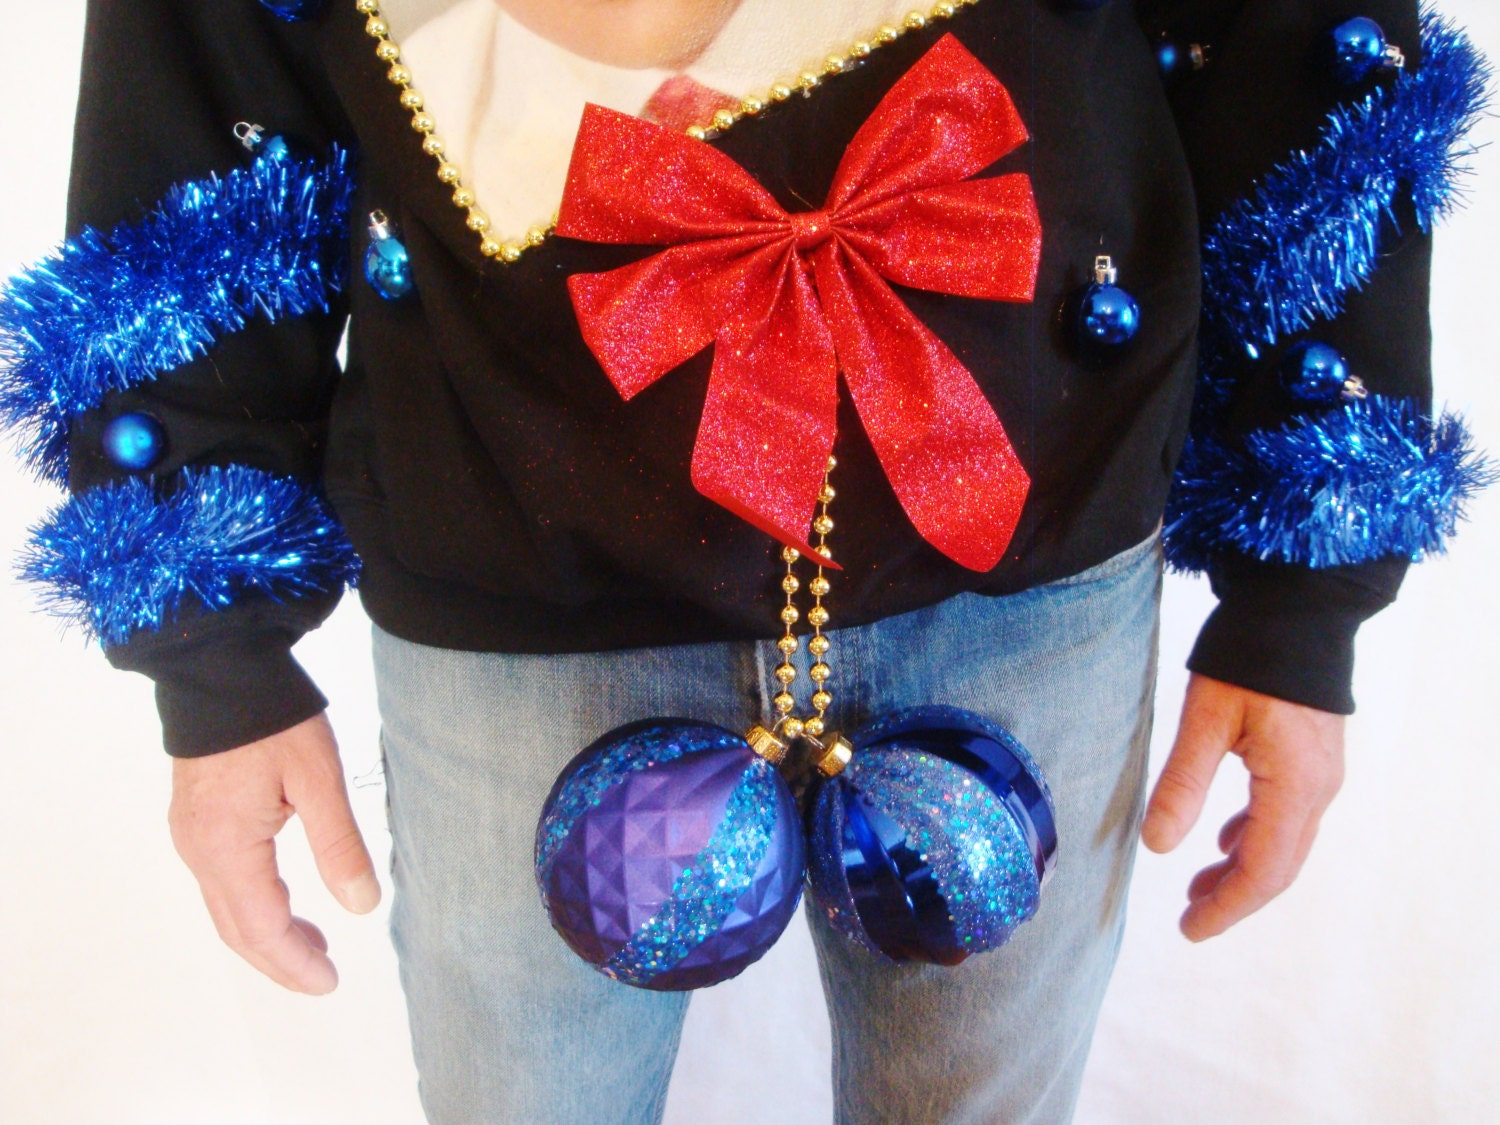 BLUE BALLS Ugly Christmas Sweater Contest Winner. Elvis X-mas